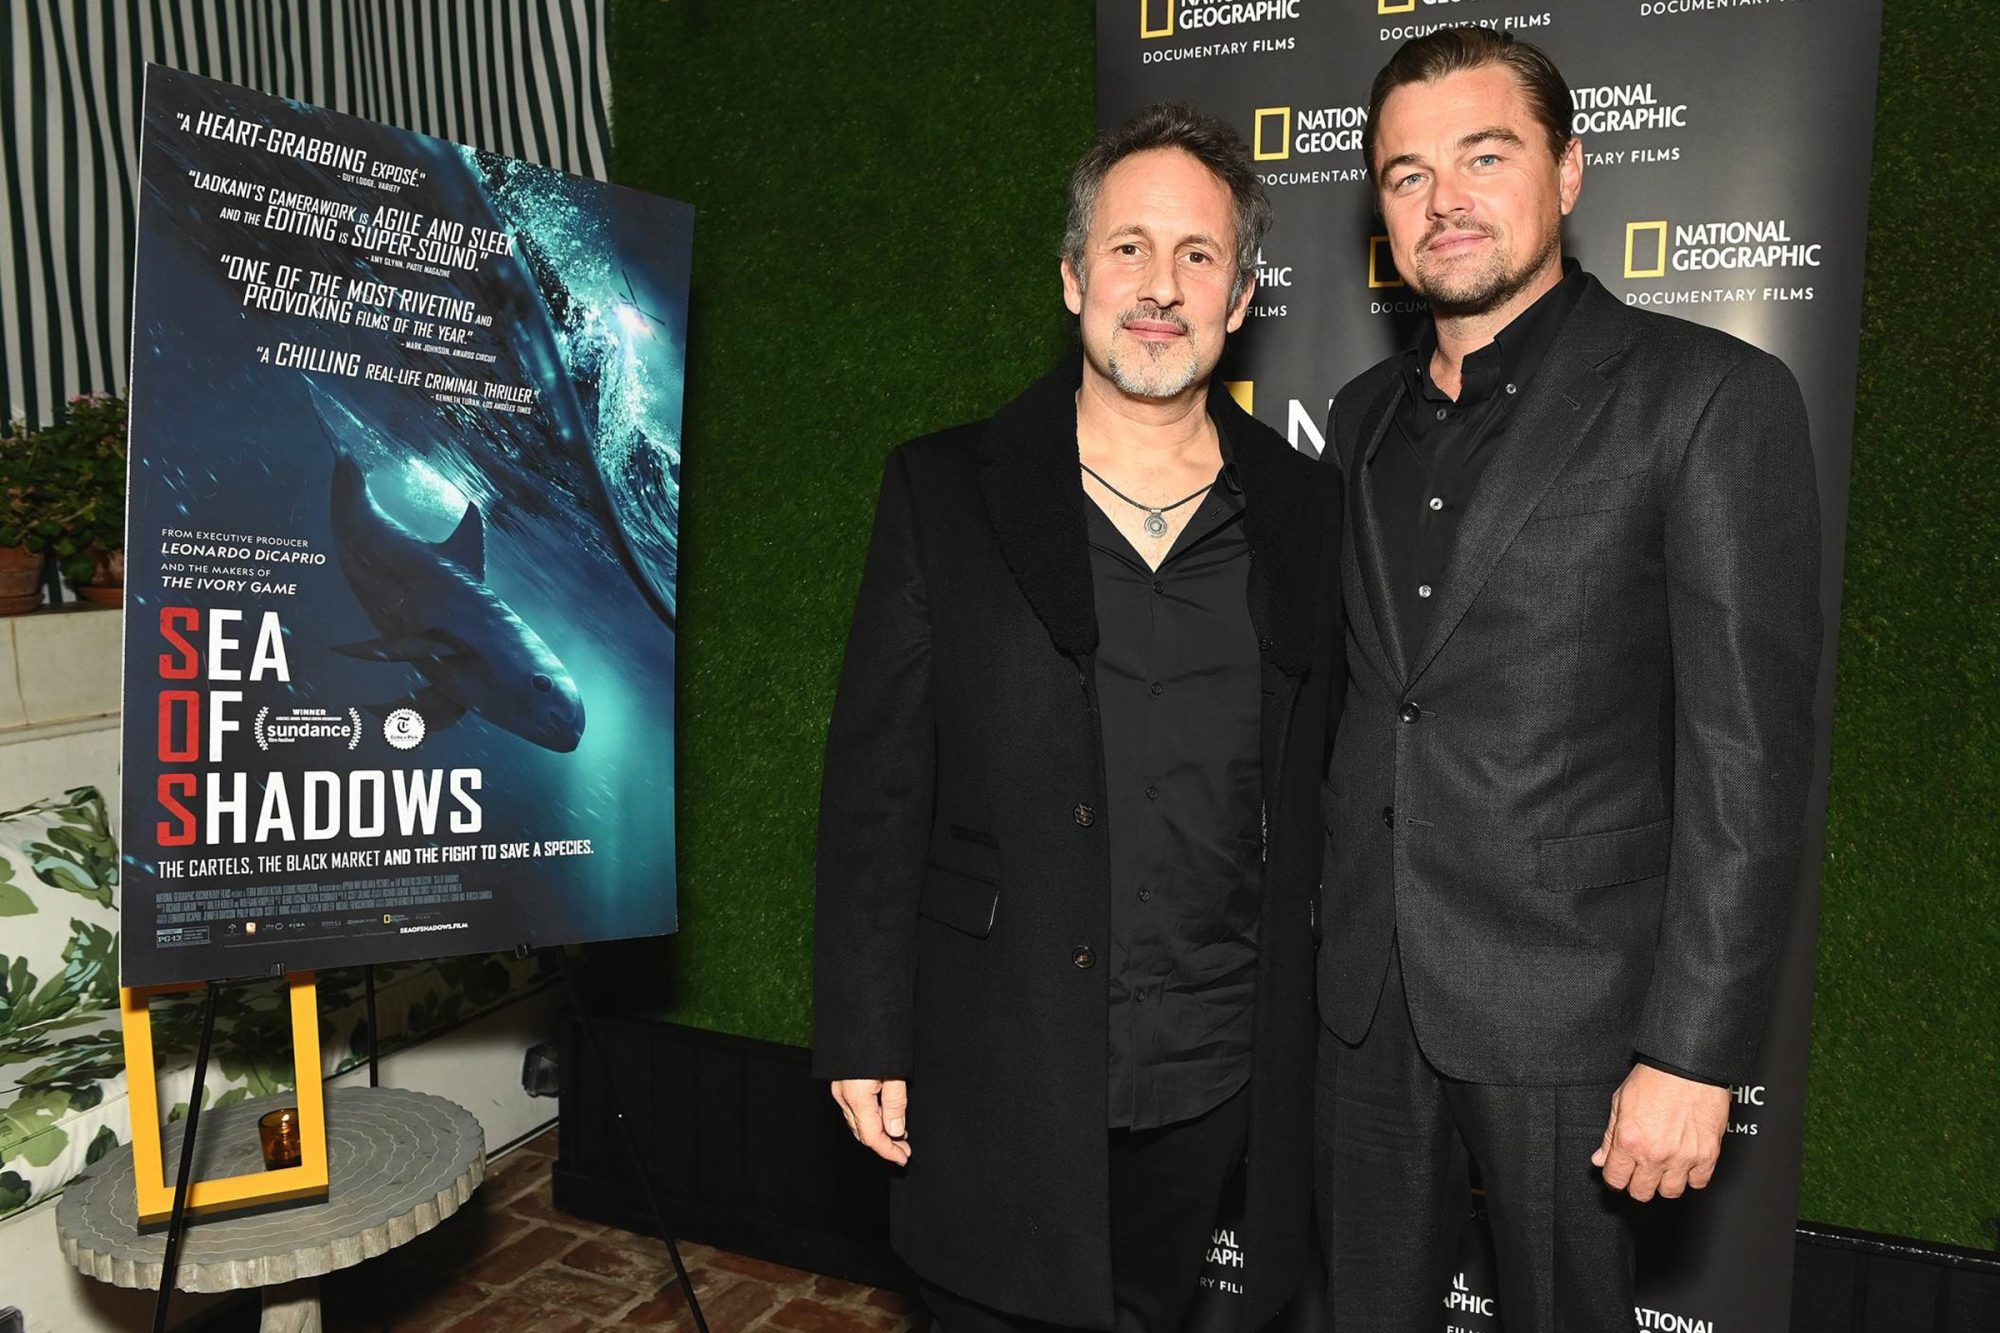 Leonardo DiCaprio (executive producer of the film) along with director Richard Ladkani at a special event this week for National Geographic's documentary SEA OF SHADOWS.